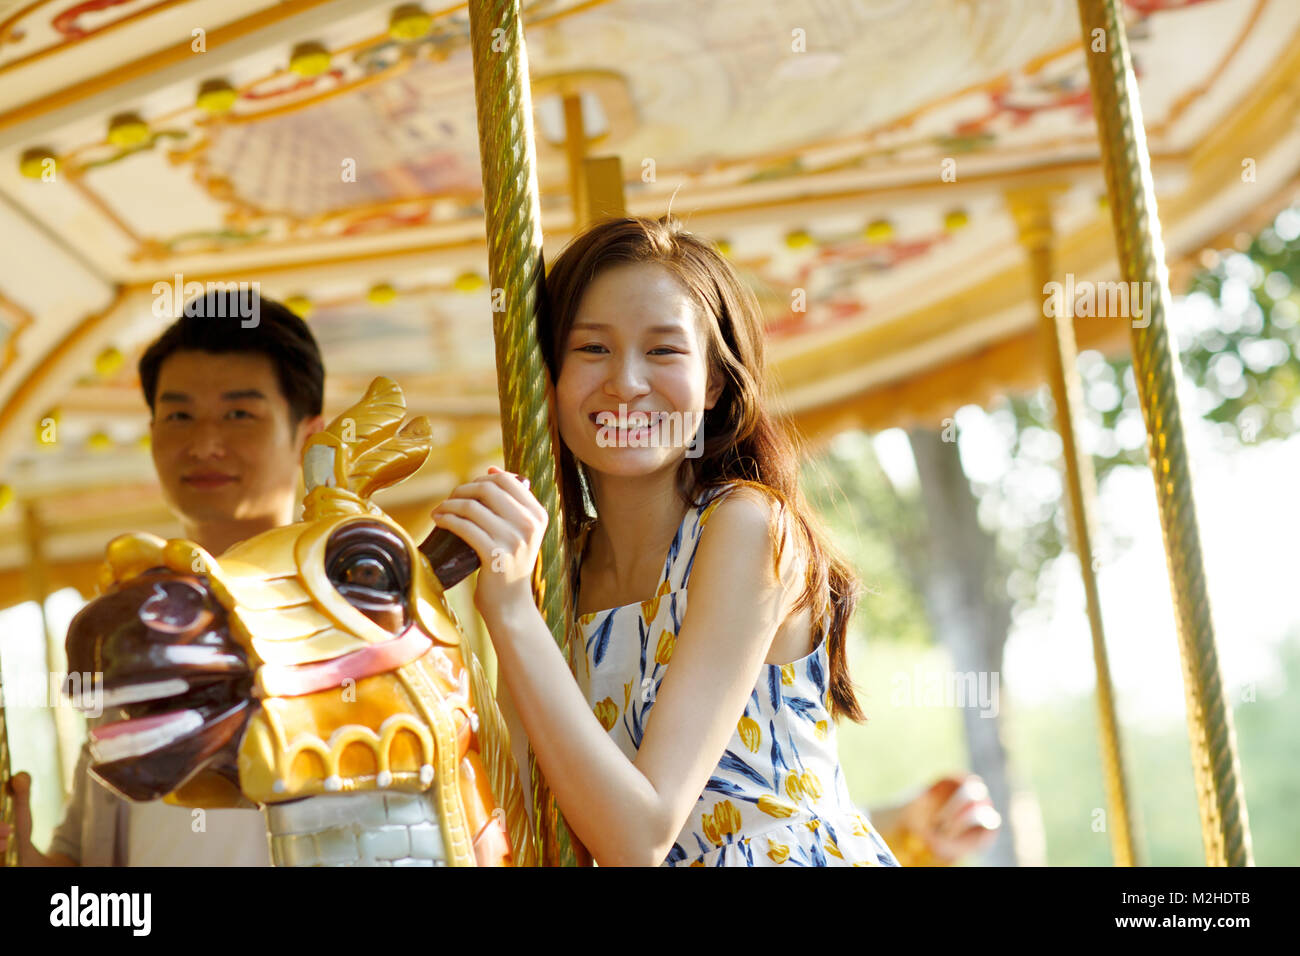 Young lovers riding merry rides on the playground - Stock Image